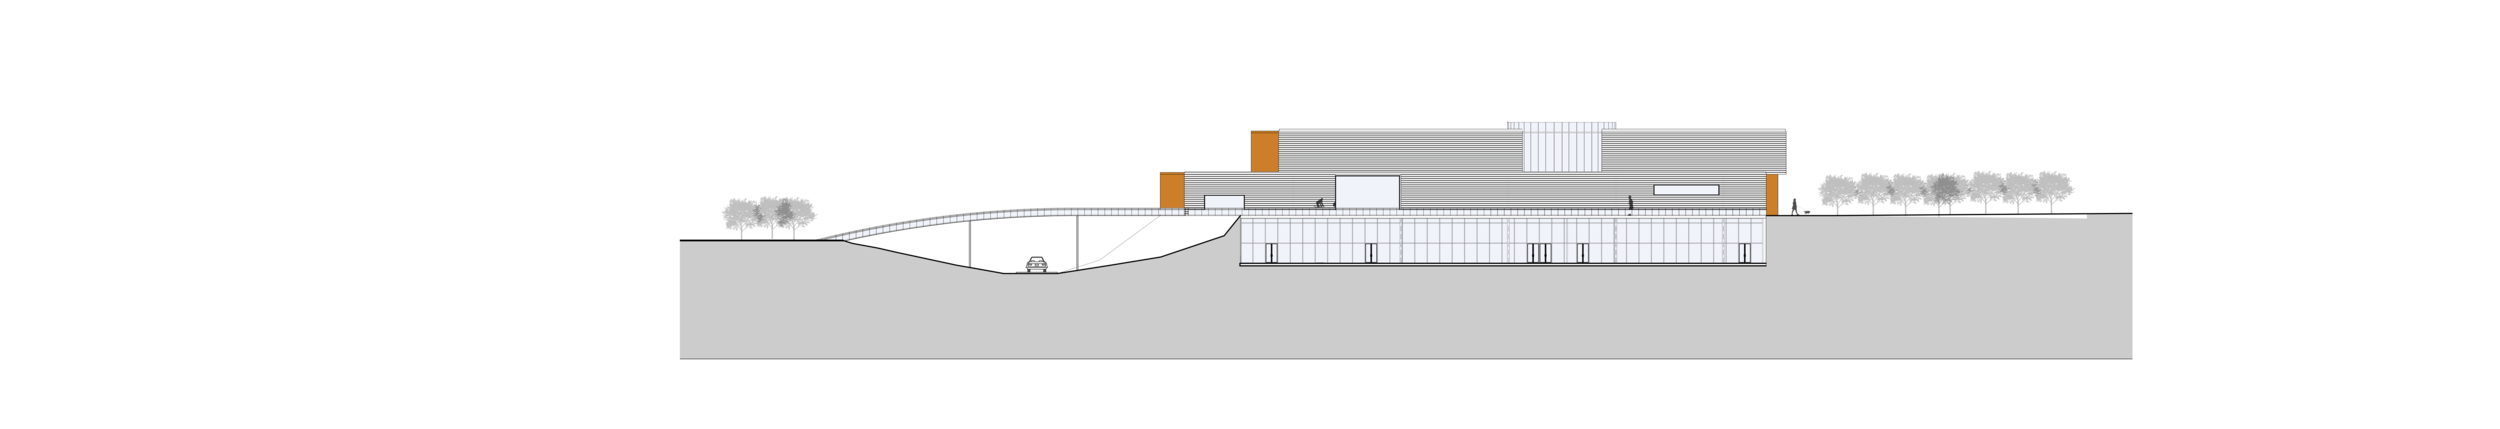 Longitudinal Section through Sculpture Garden and Building Elevation